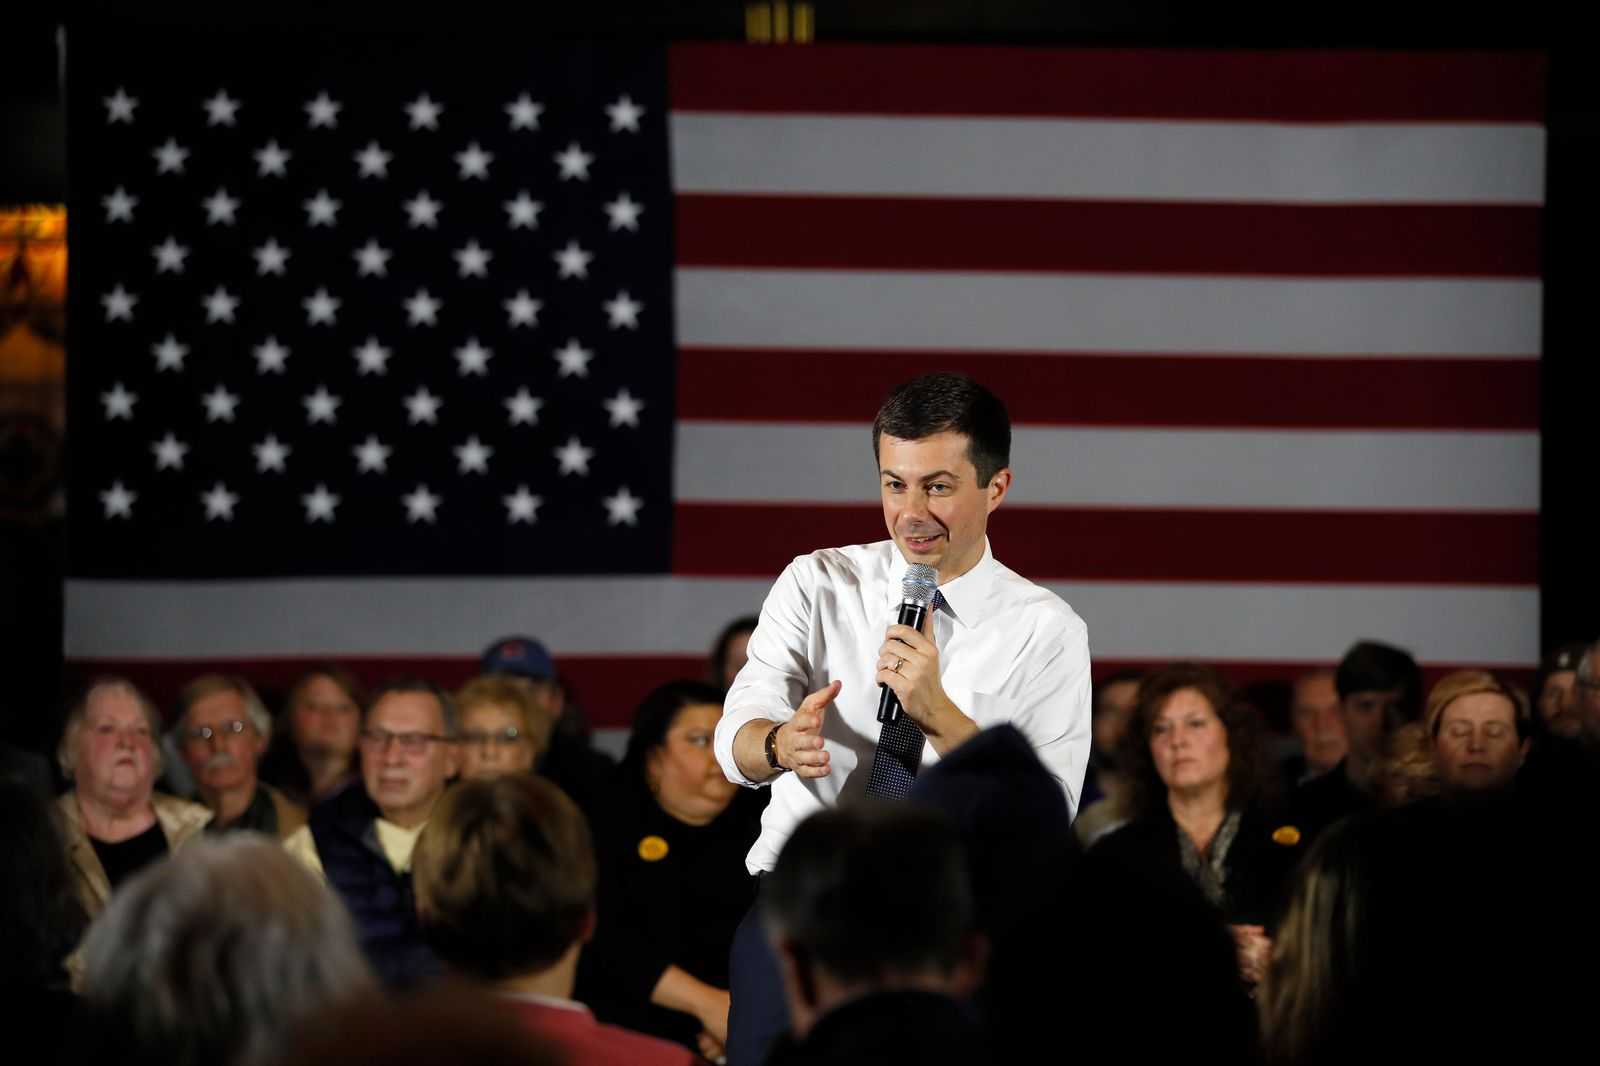 Democratic presidential candidate South Bend, Ind., Mayor Pete Buttigieg speaks during a town hall meeting, Tuesday, Nov. 26, 2019, in Denison, Iowa. (AP Photo/Charlie Neibergall)